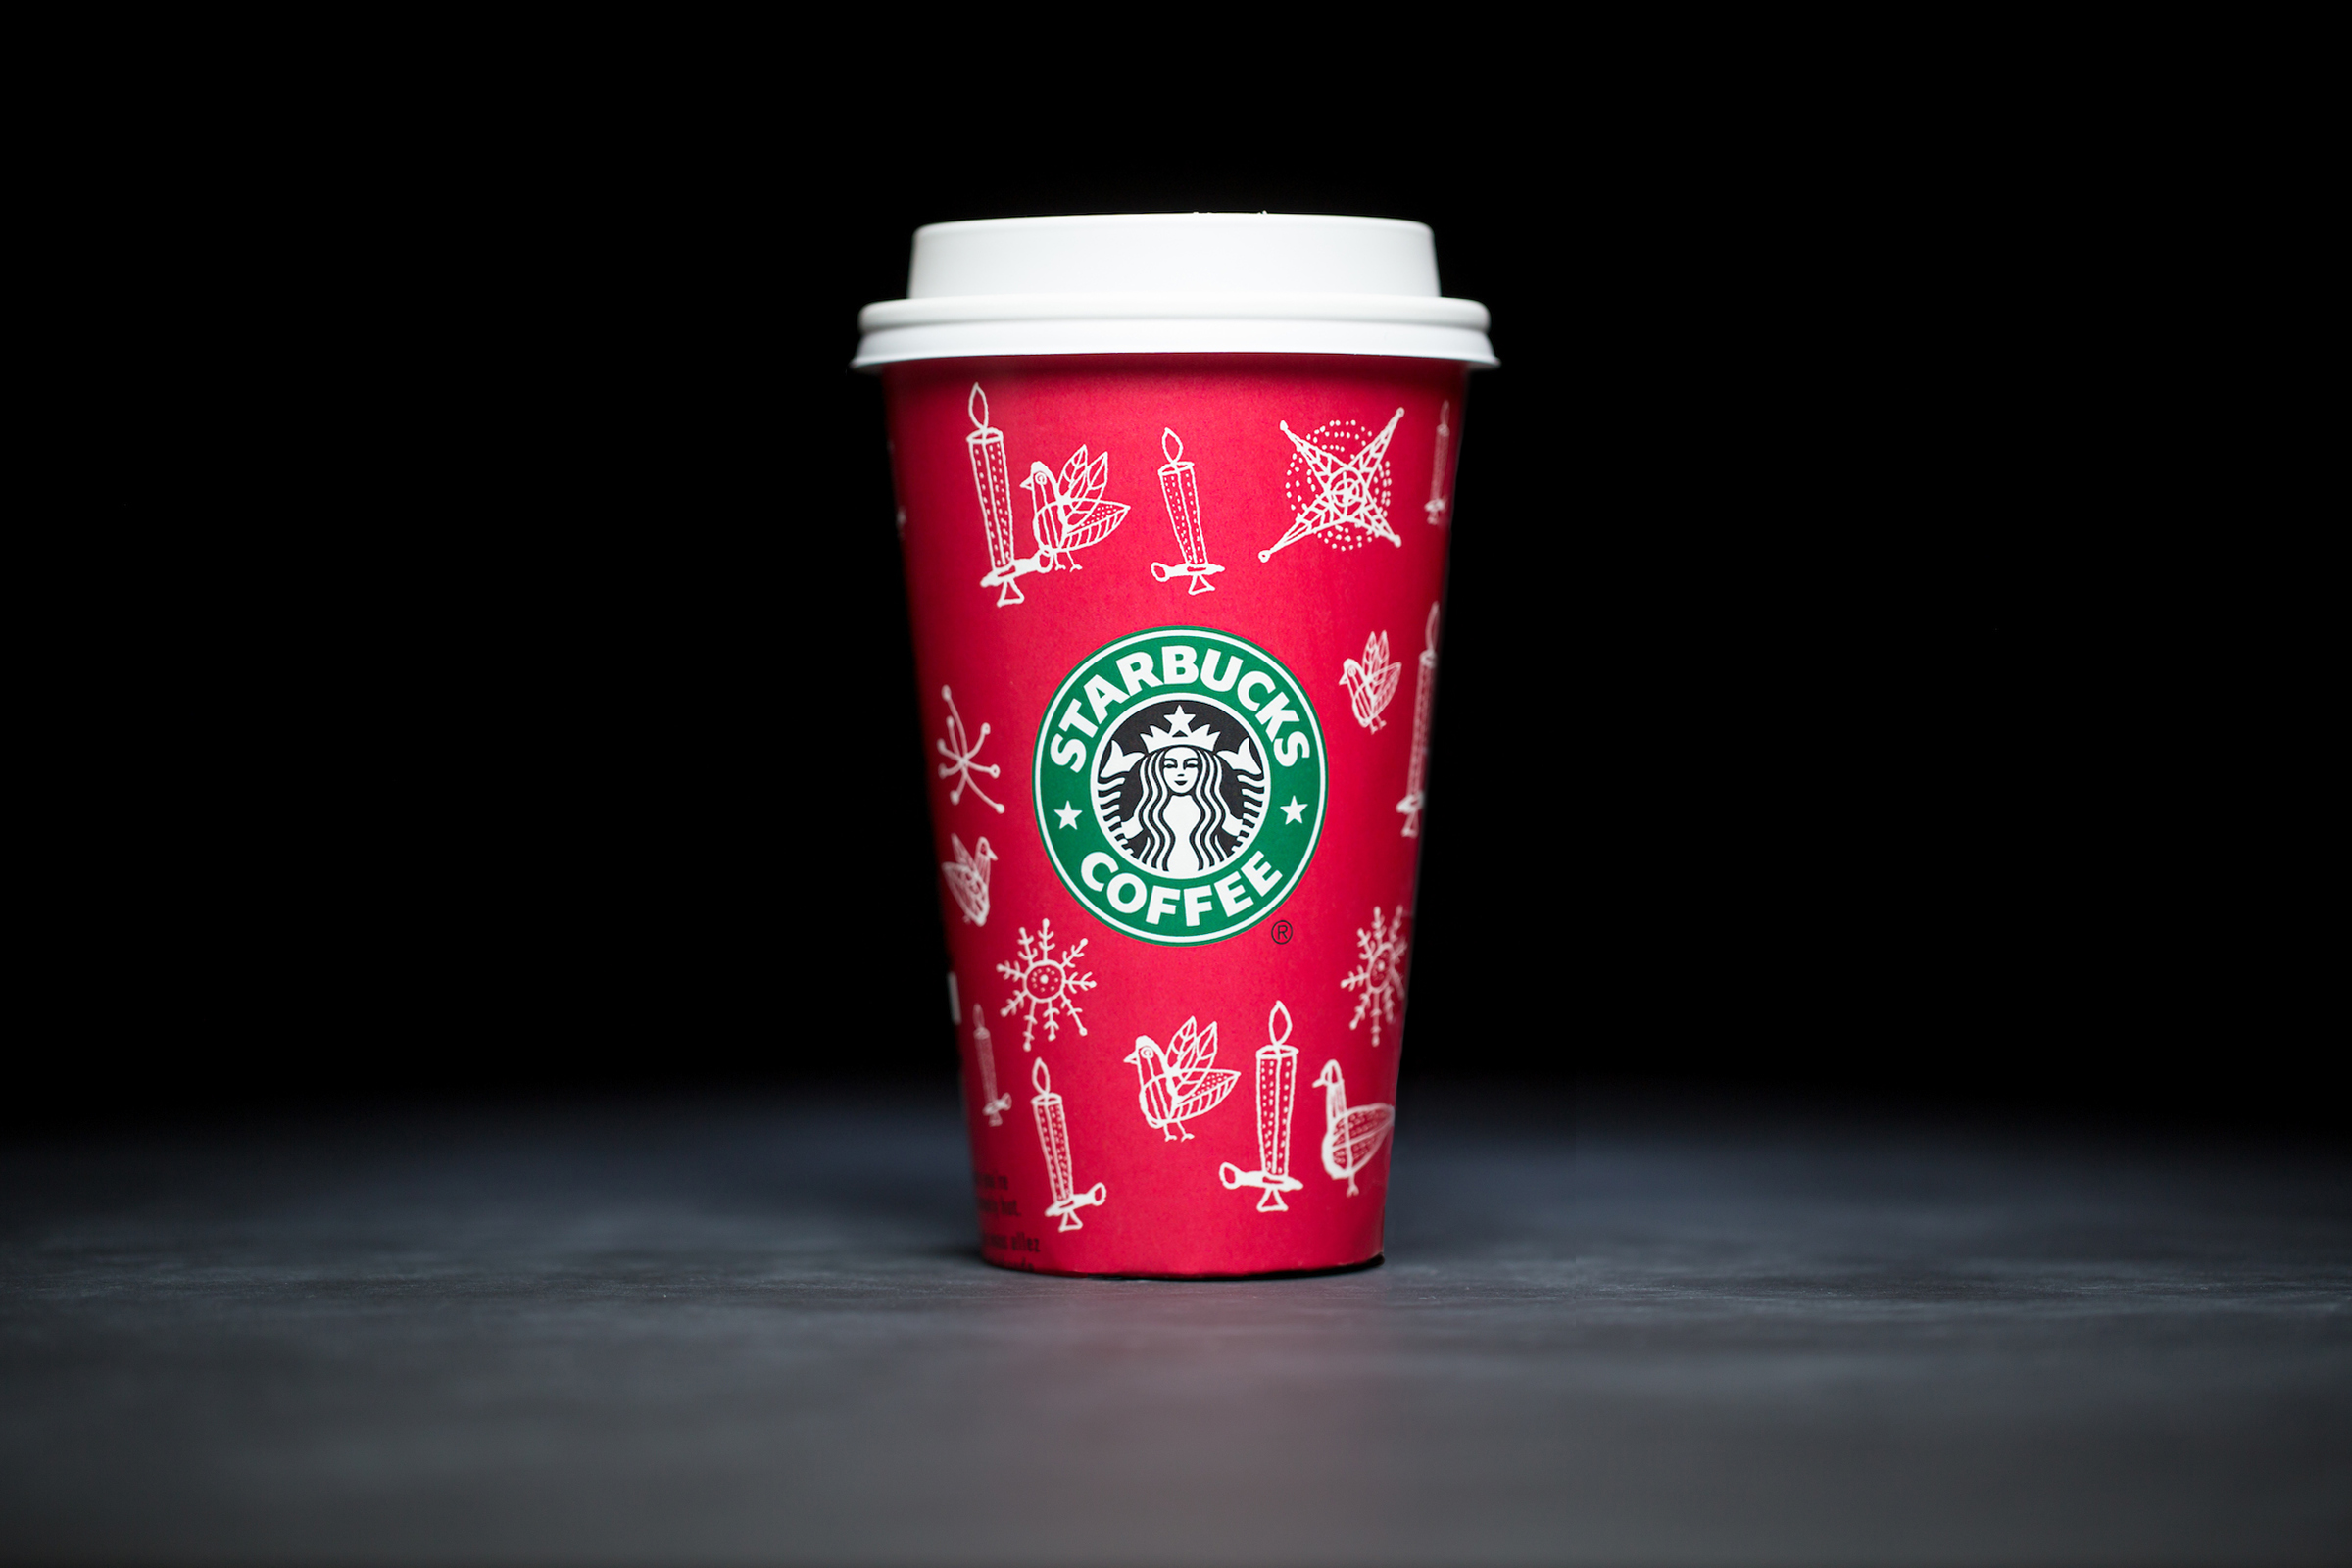 2002: For 20 years, Starbucks have released a range of holiday cup designs, most of them based around their world famous red cup. It's not easy to find the very first Starbucks holiday cups, which made their debut in stores in 1997. Few were saved, and electronic design files were lost in an earthquake in 2001. Even an Internet search is unyielding, with the cups having made their arrival long before the first selfie. But, we have them here! Click on for a photos of all 20 holidays cup designs. (Image: Joshua Trujillo/Cover Images)